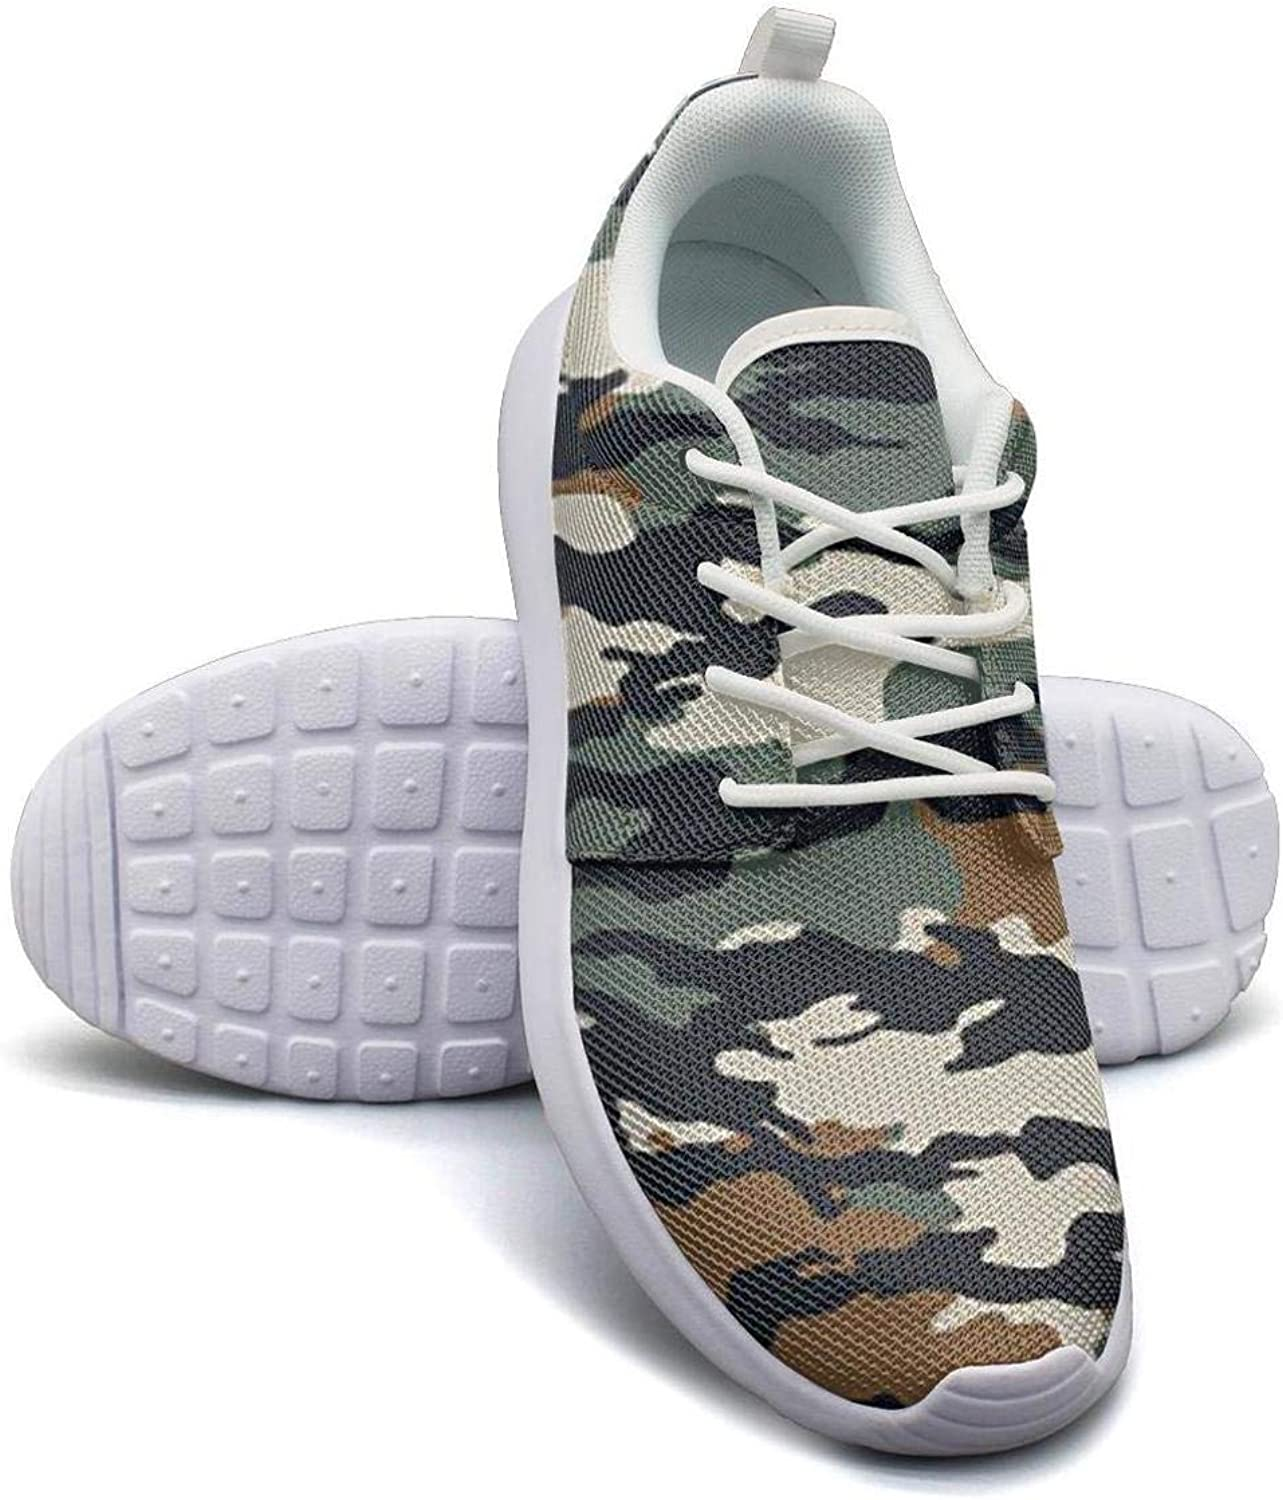 Military Camo Camouflage Sneakers